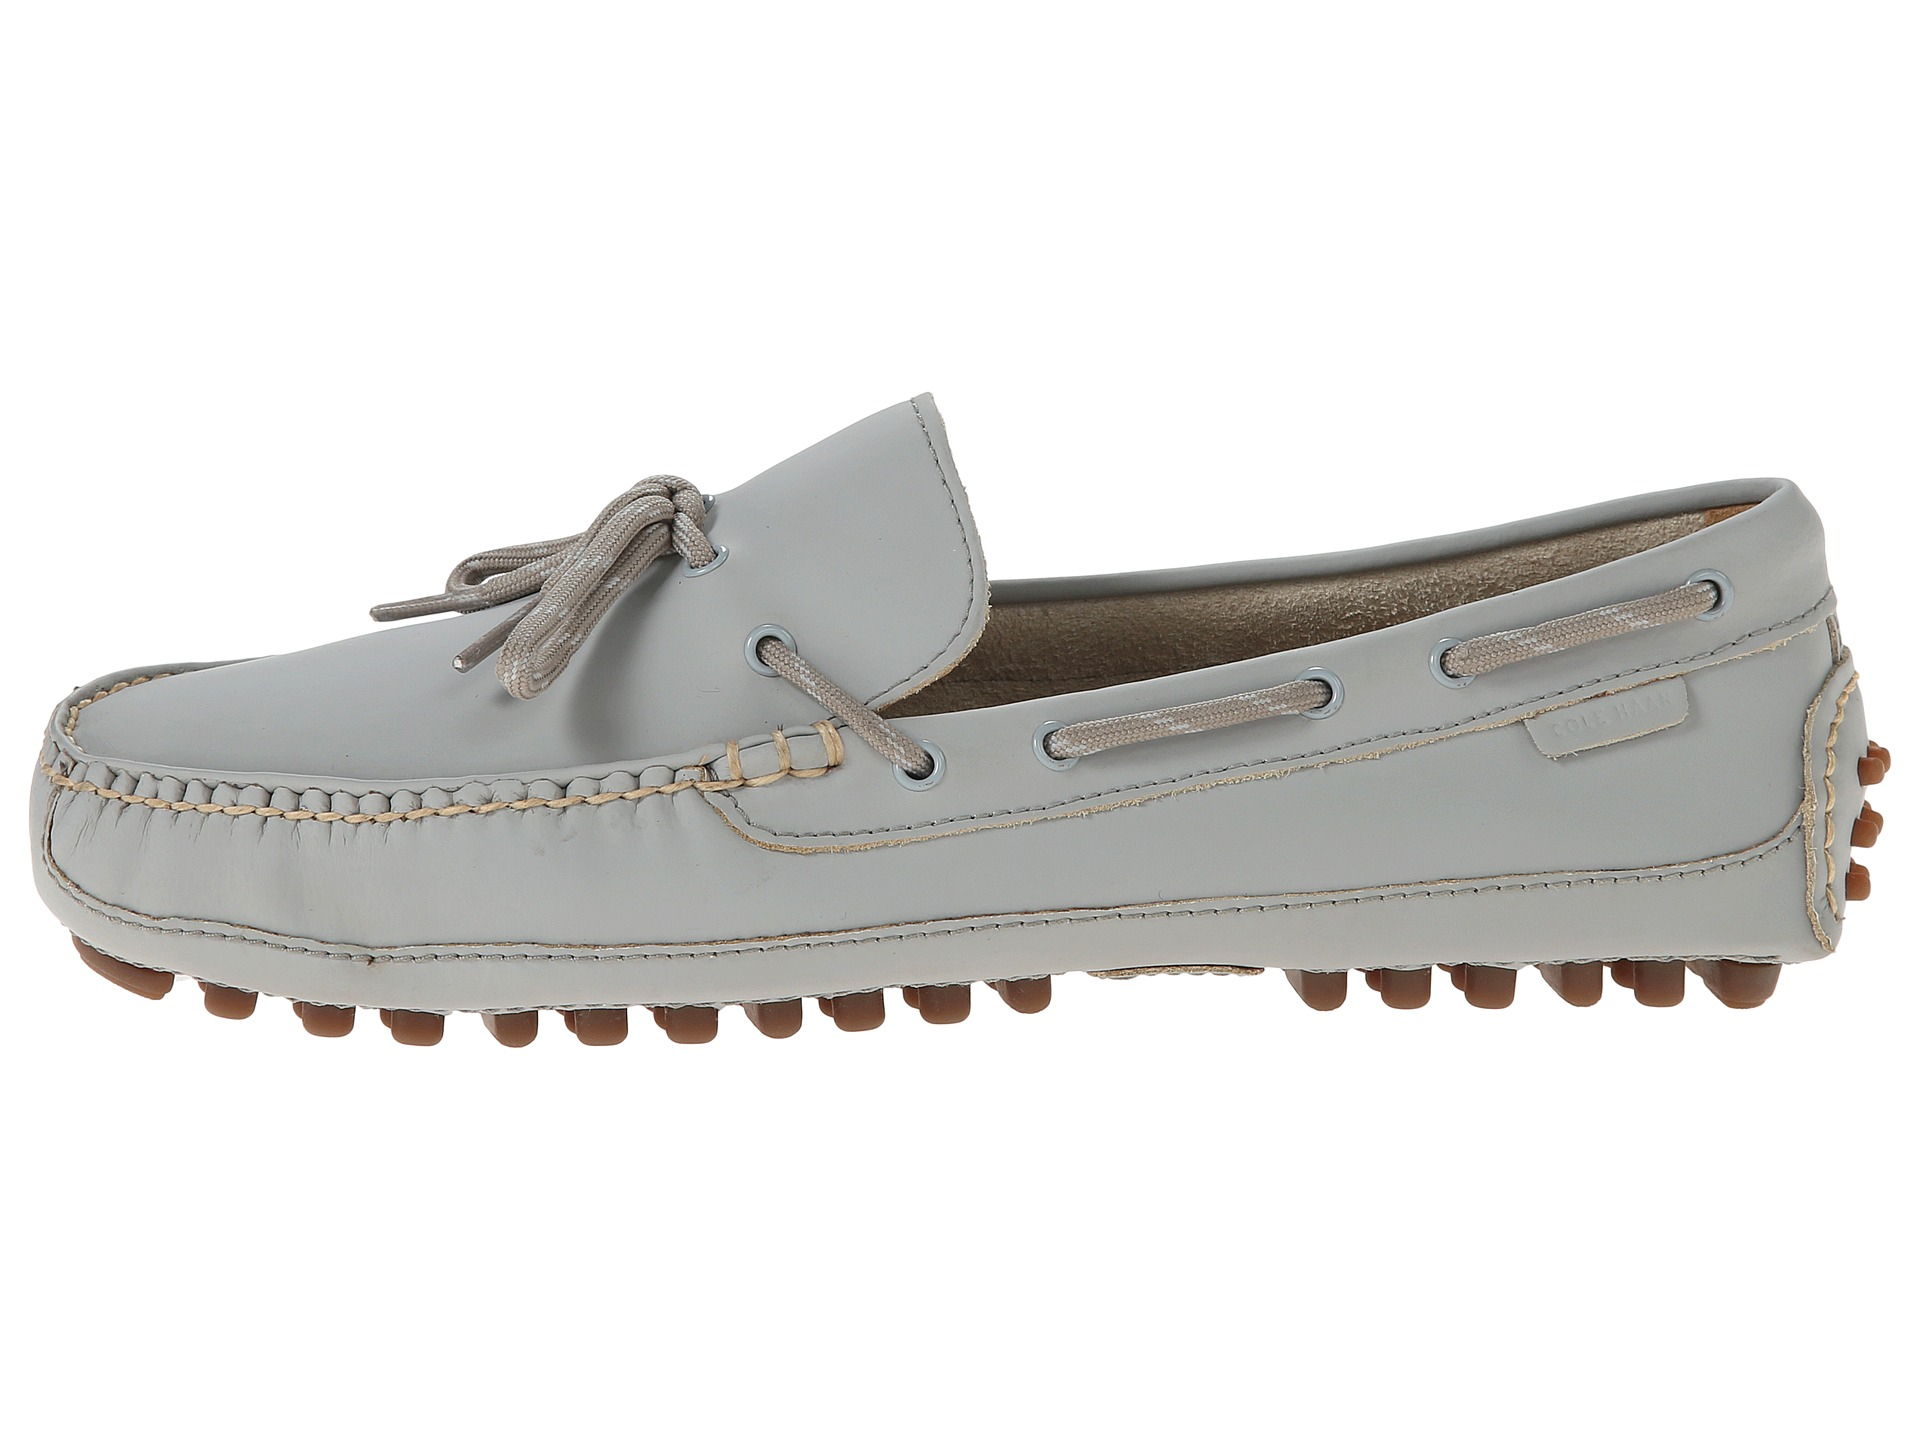 e3a6e69e3b7 Lyst - Cole Haan Grant Canoe Camp Moc in Gray for Men